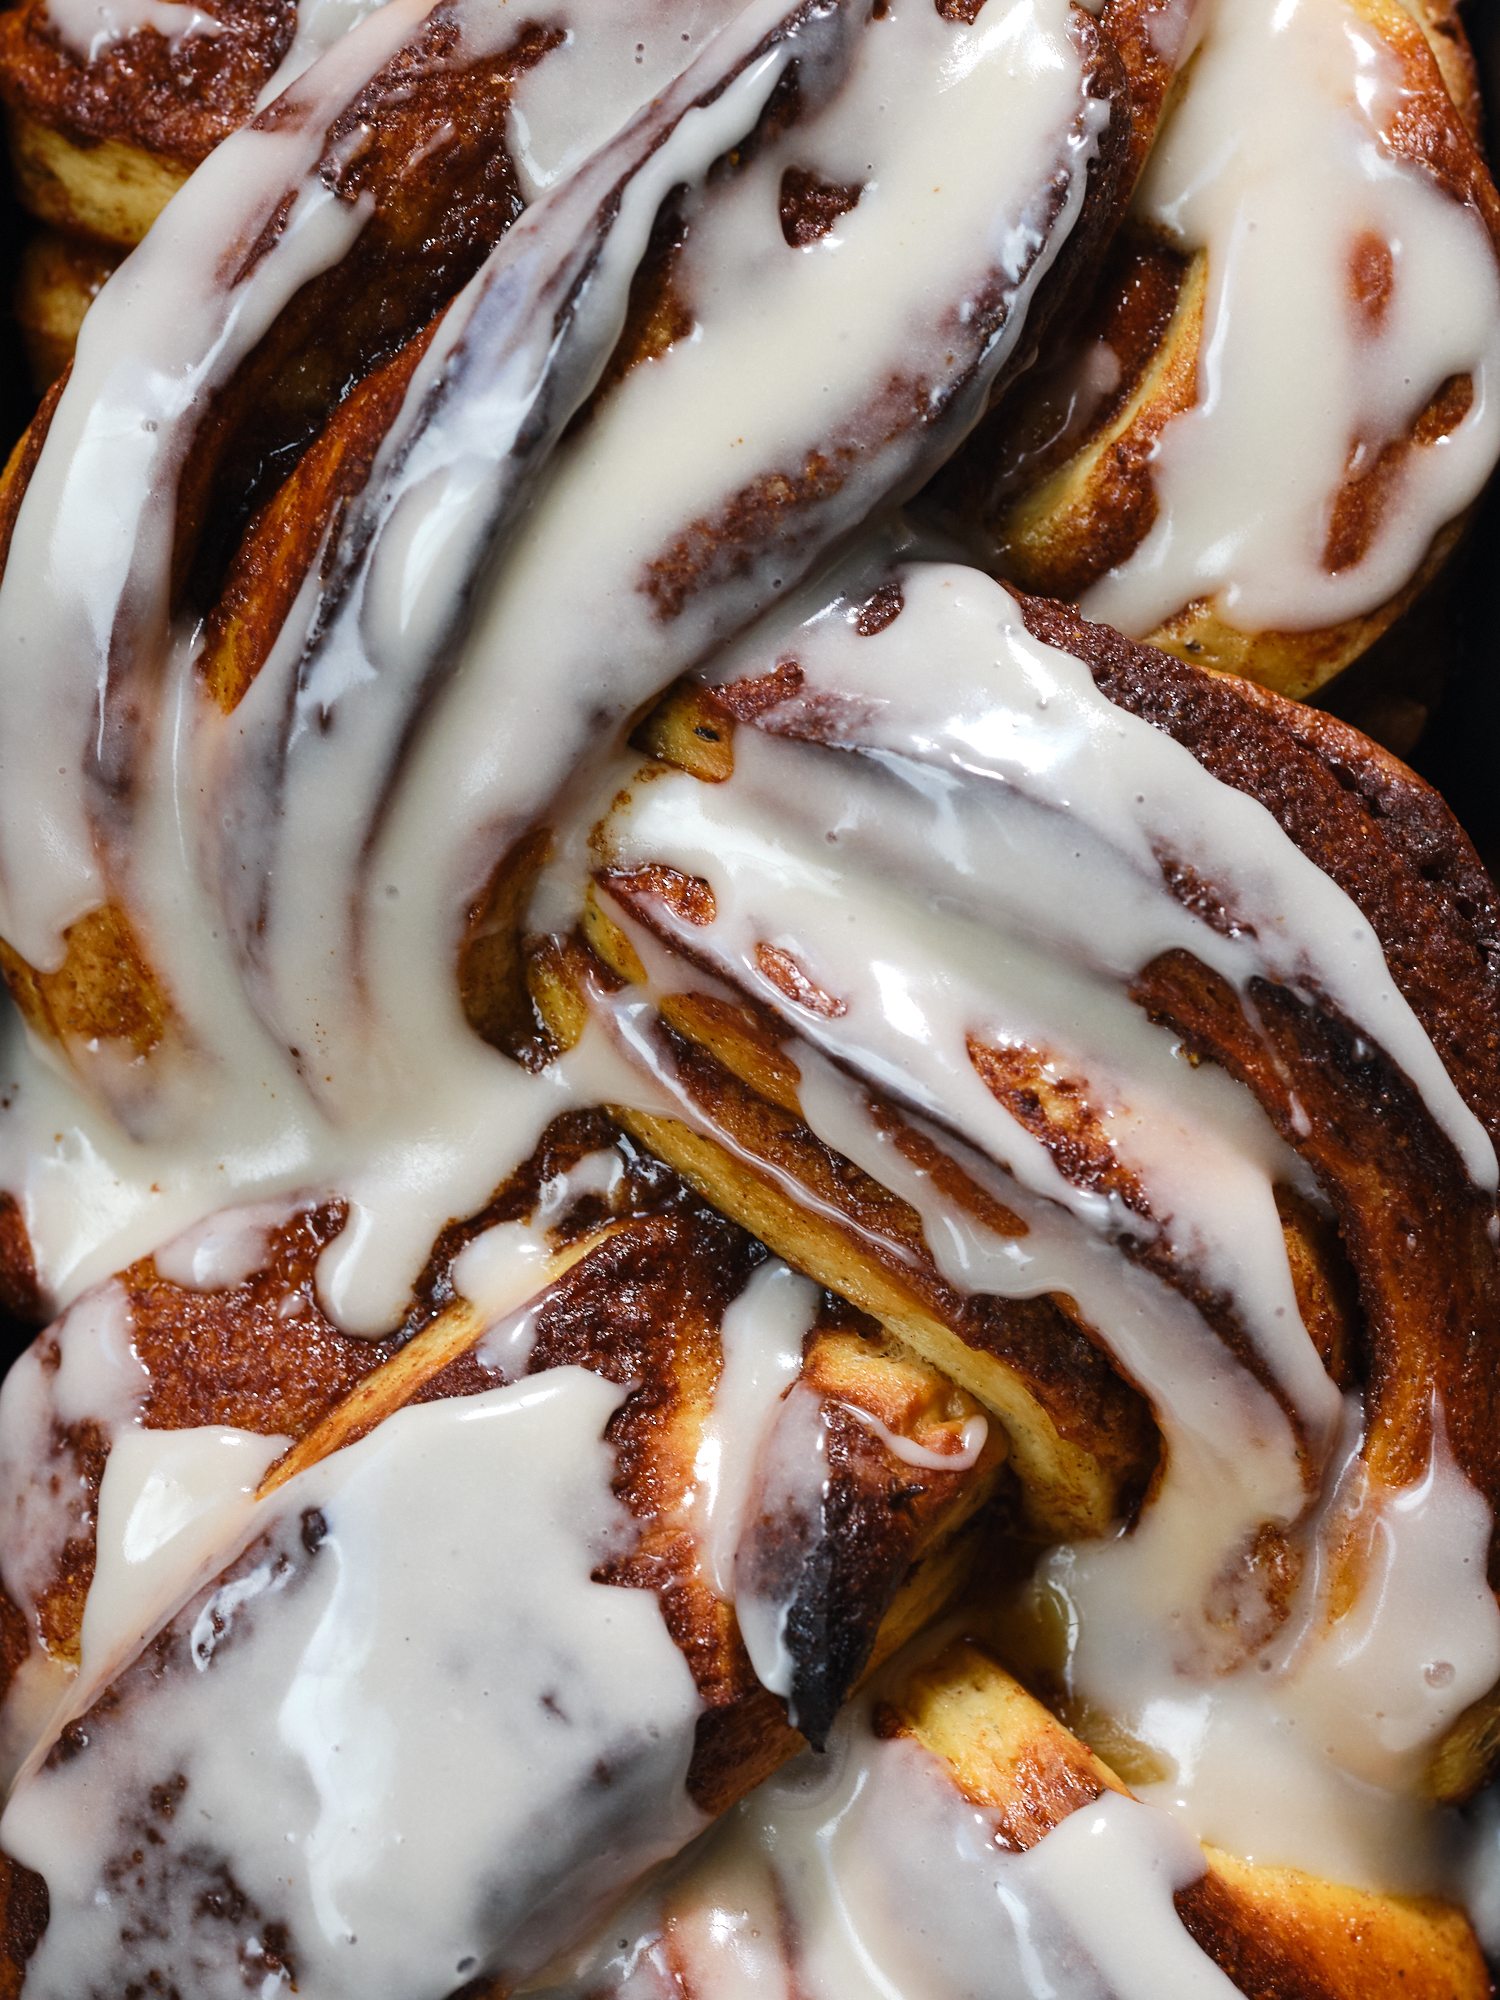 Cinnamon Roll Swirl Loaf - close-up